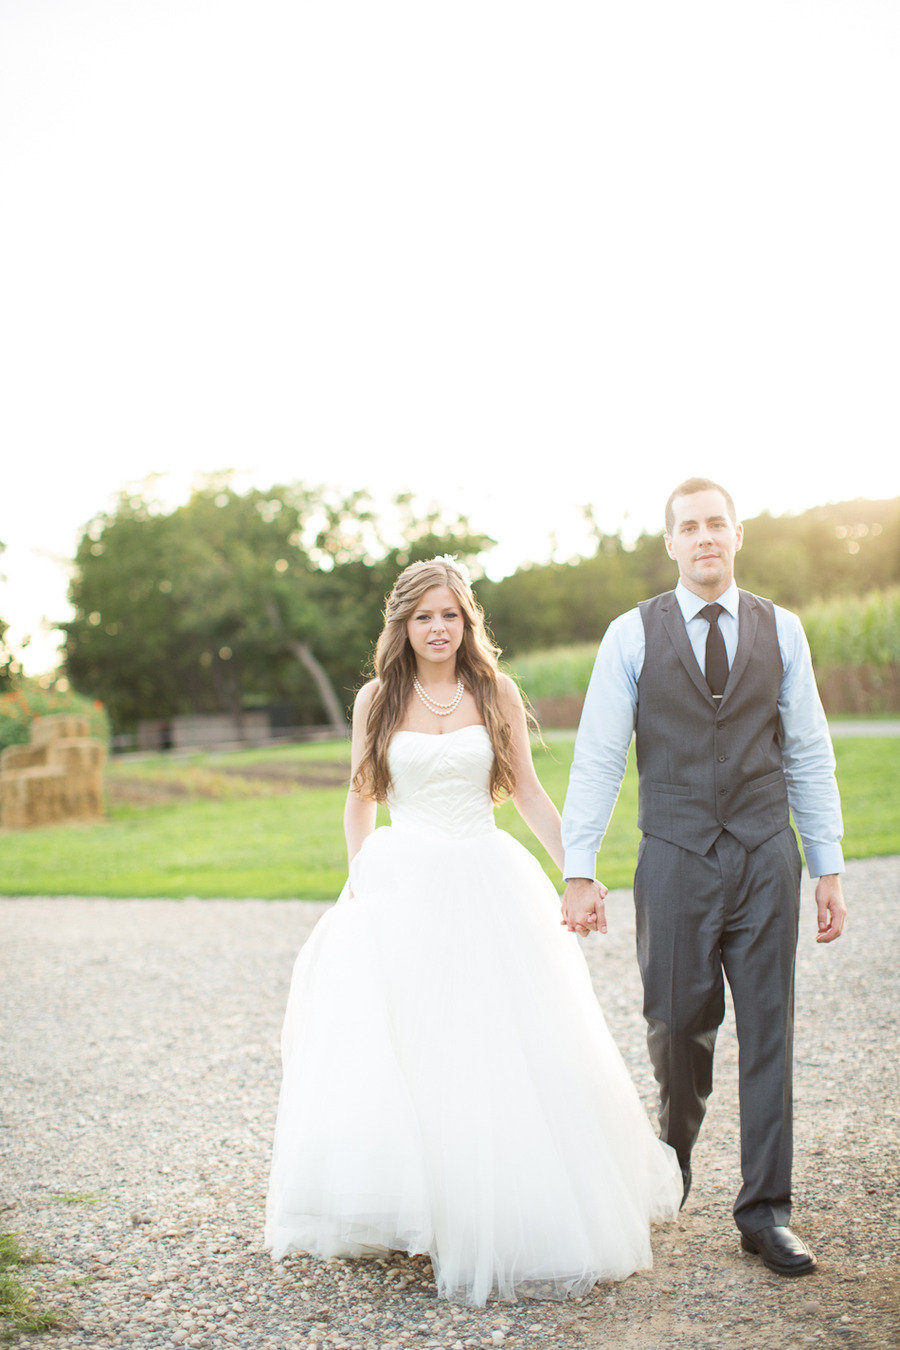 Queens County Farm Museum Wedding From Justine Bursoni Photography